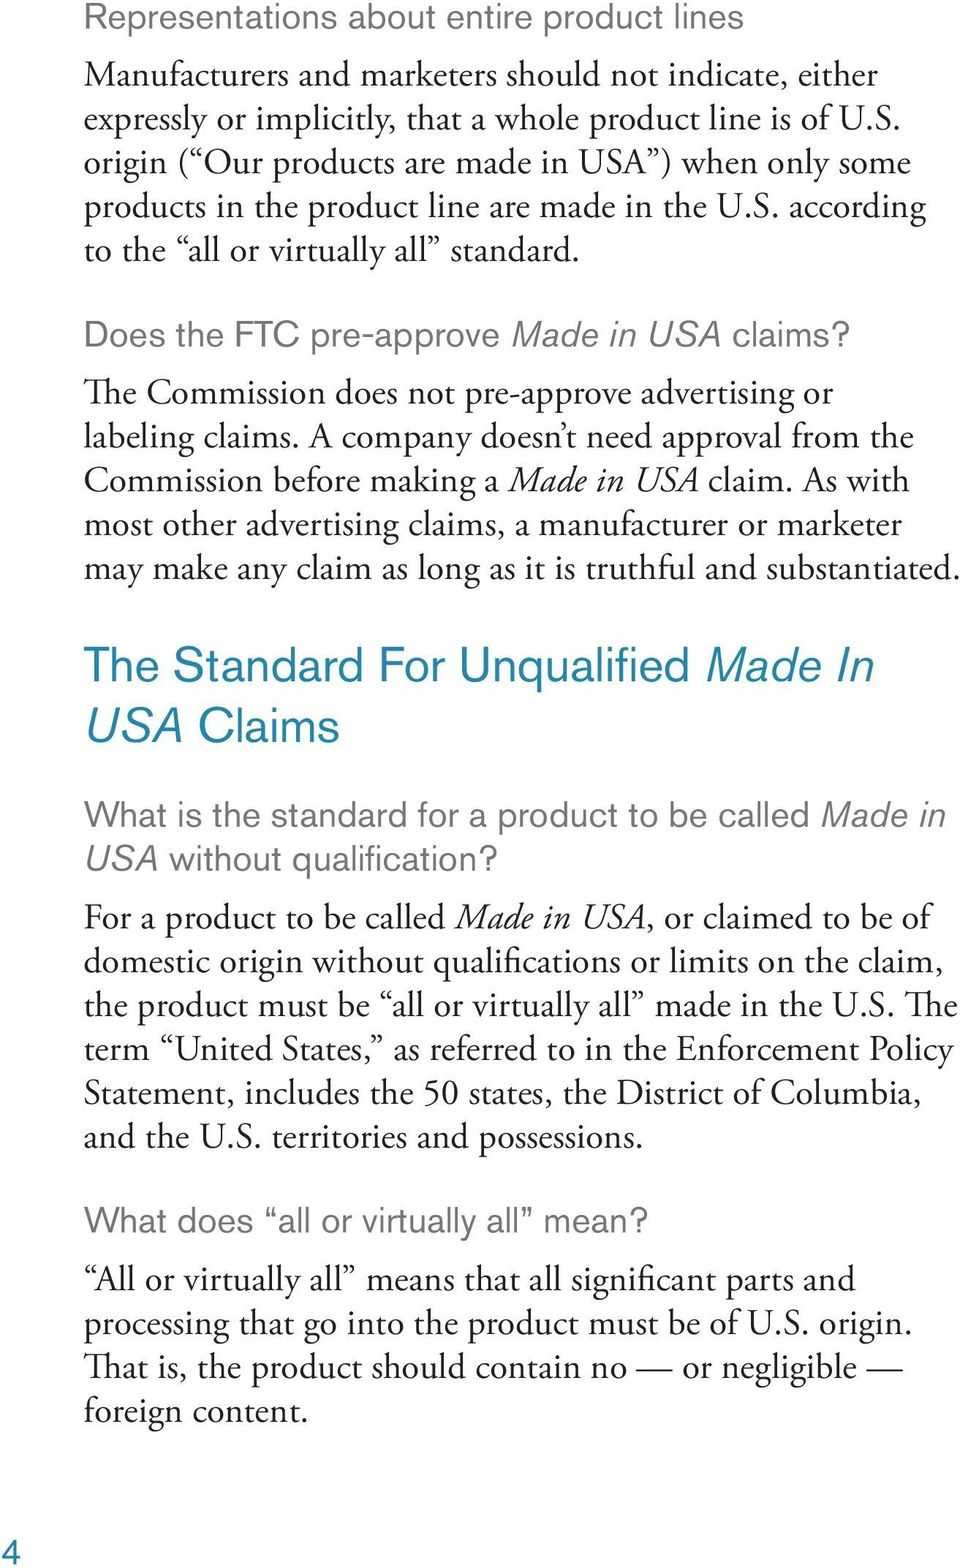 The Commission does not pre-approve advertising or labeling claims. A company doesn t need approval from the Commission before making a Made in USA claim.